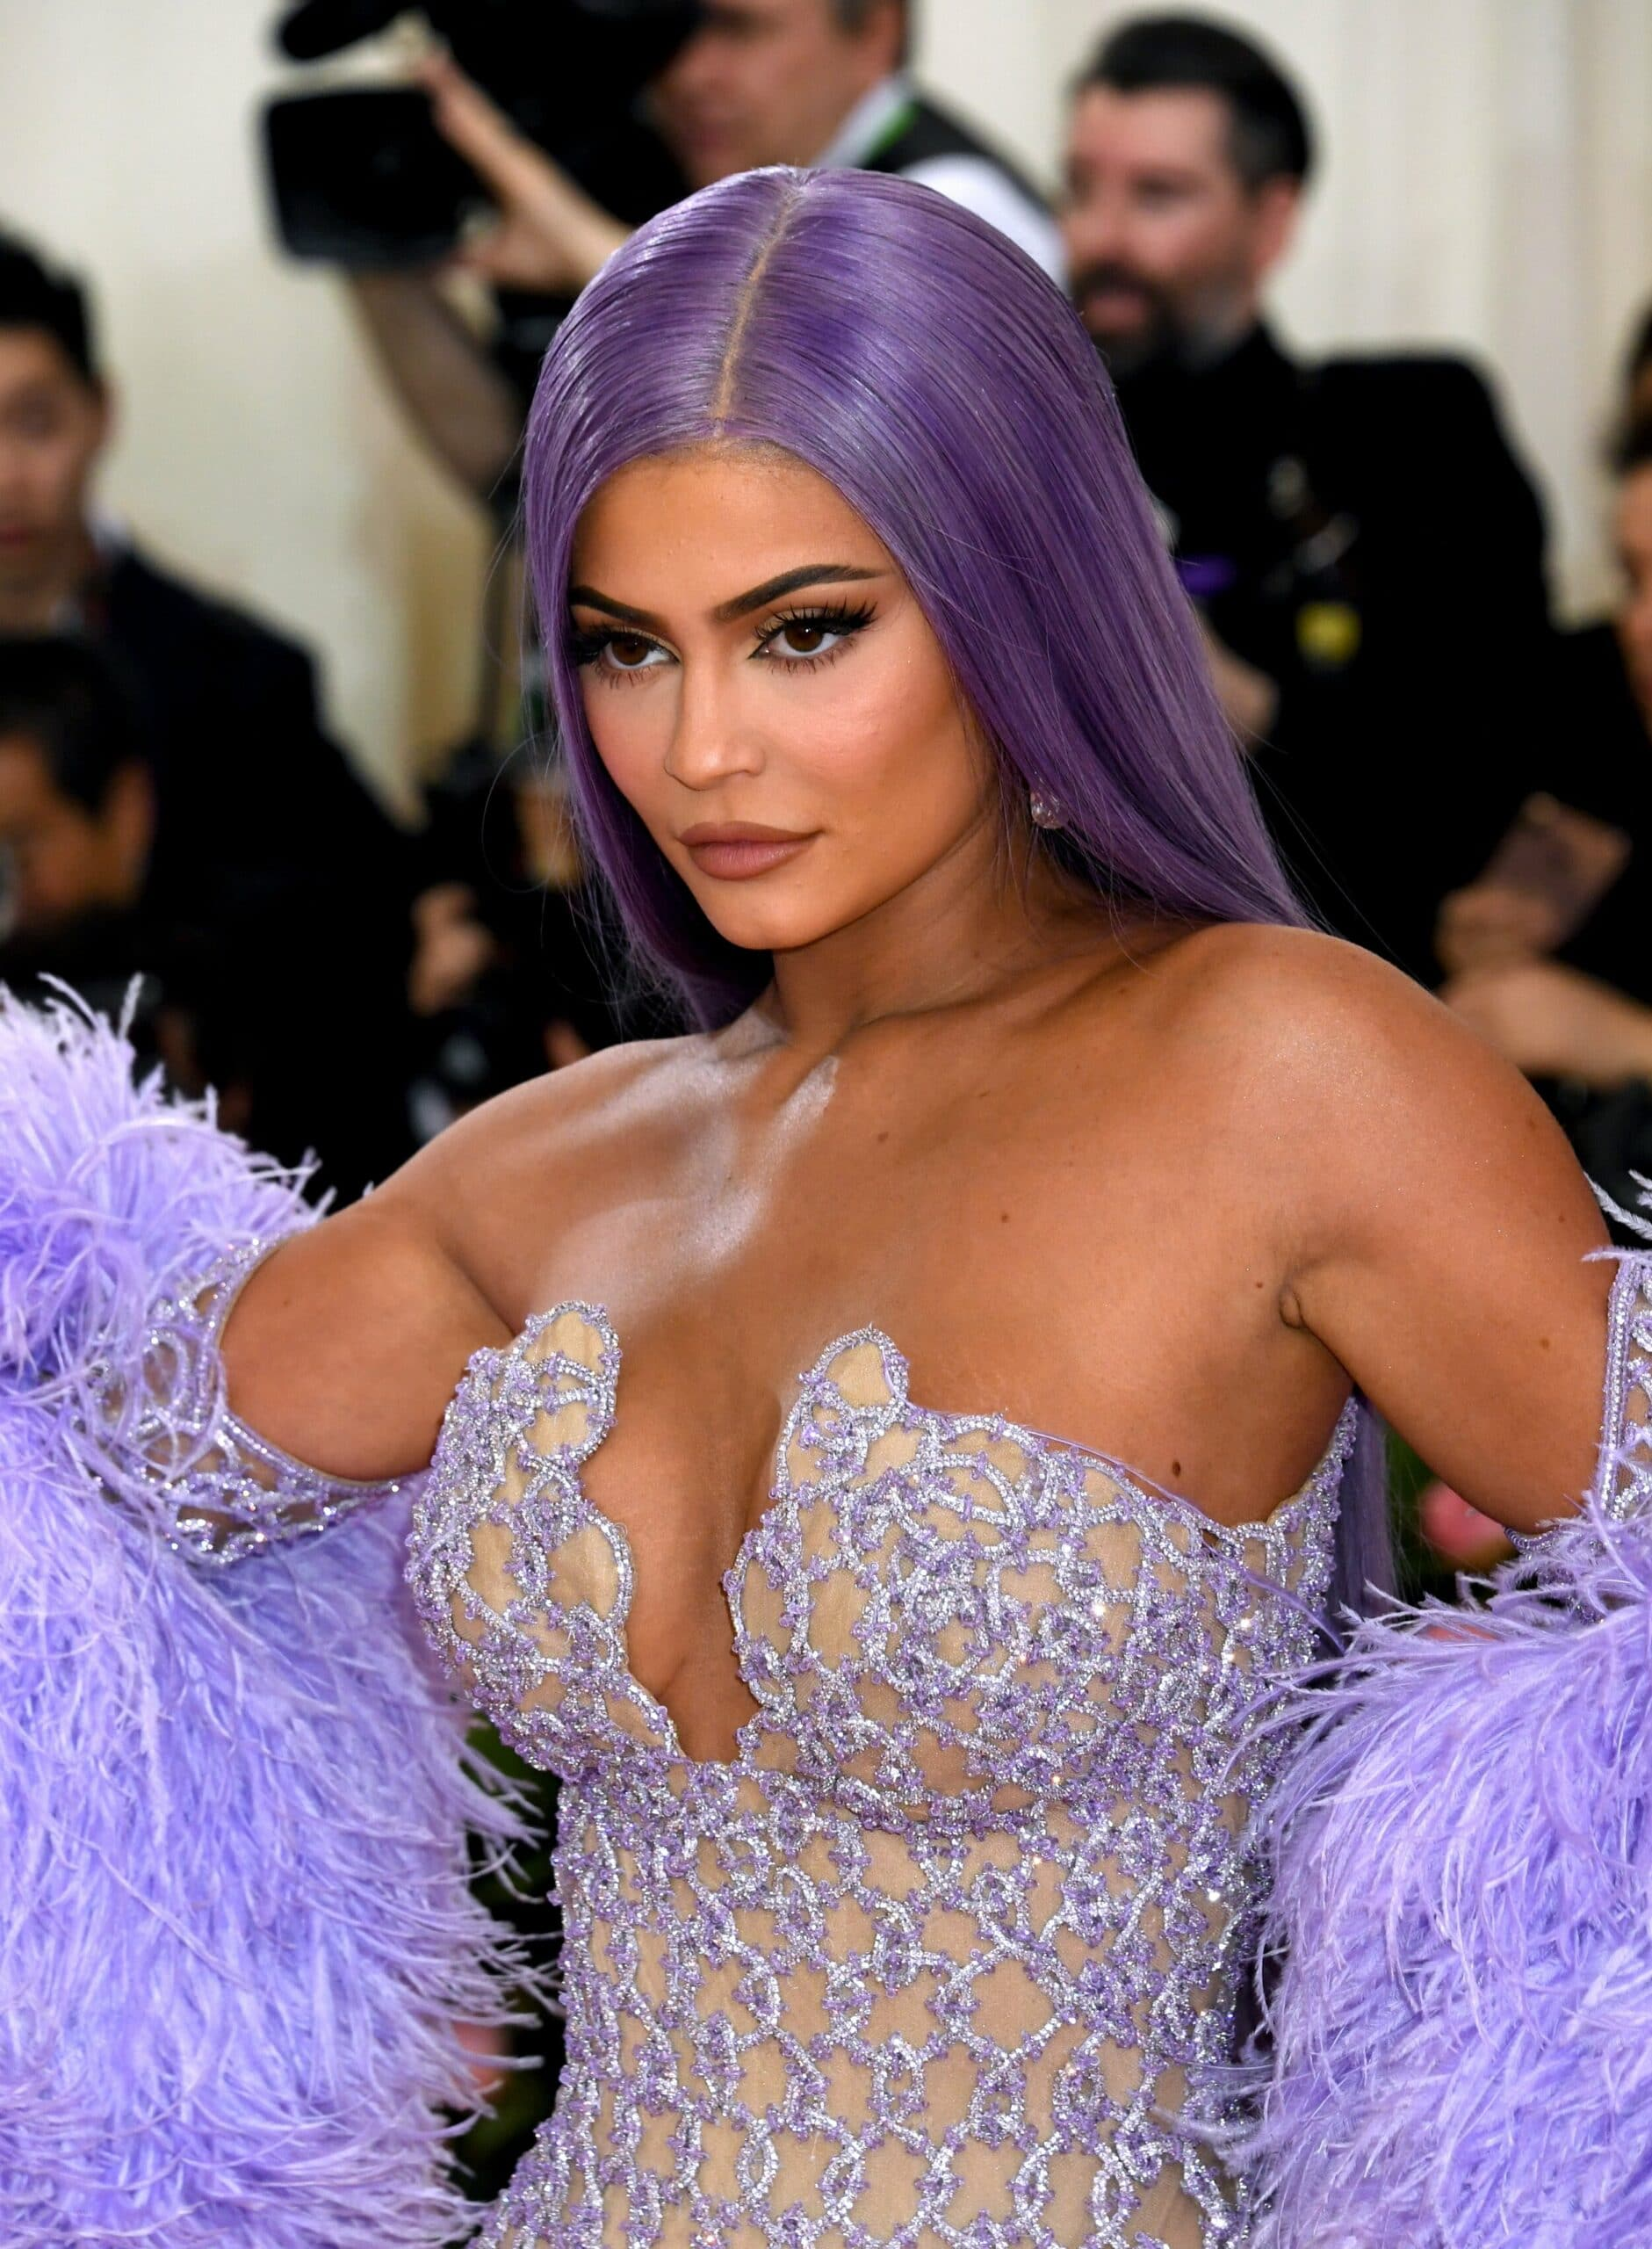 Kylie Jenner Drinks It Every Day, But What Is It and What Does It Do?